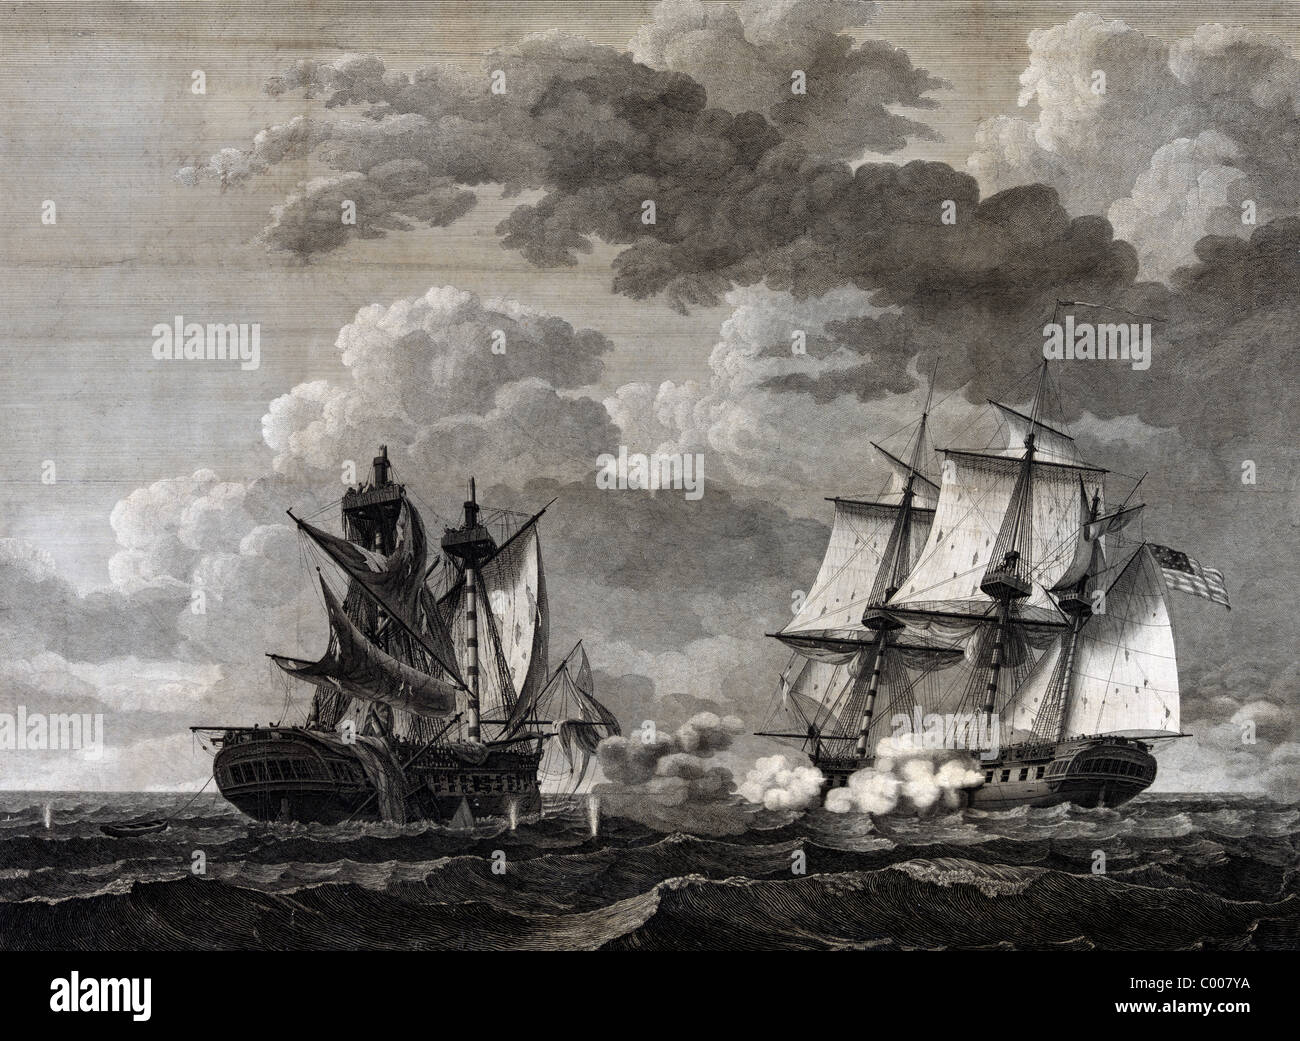 Capture of H.B.M. Frigate Macedonian, Capt. J.S. Carden by the U.S. frigate United States, Stephen Decatur, Esqr., - Stock Image